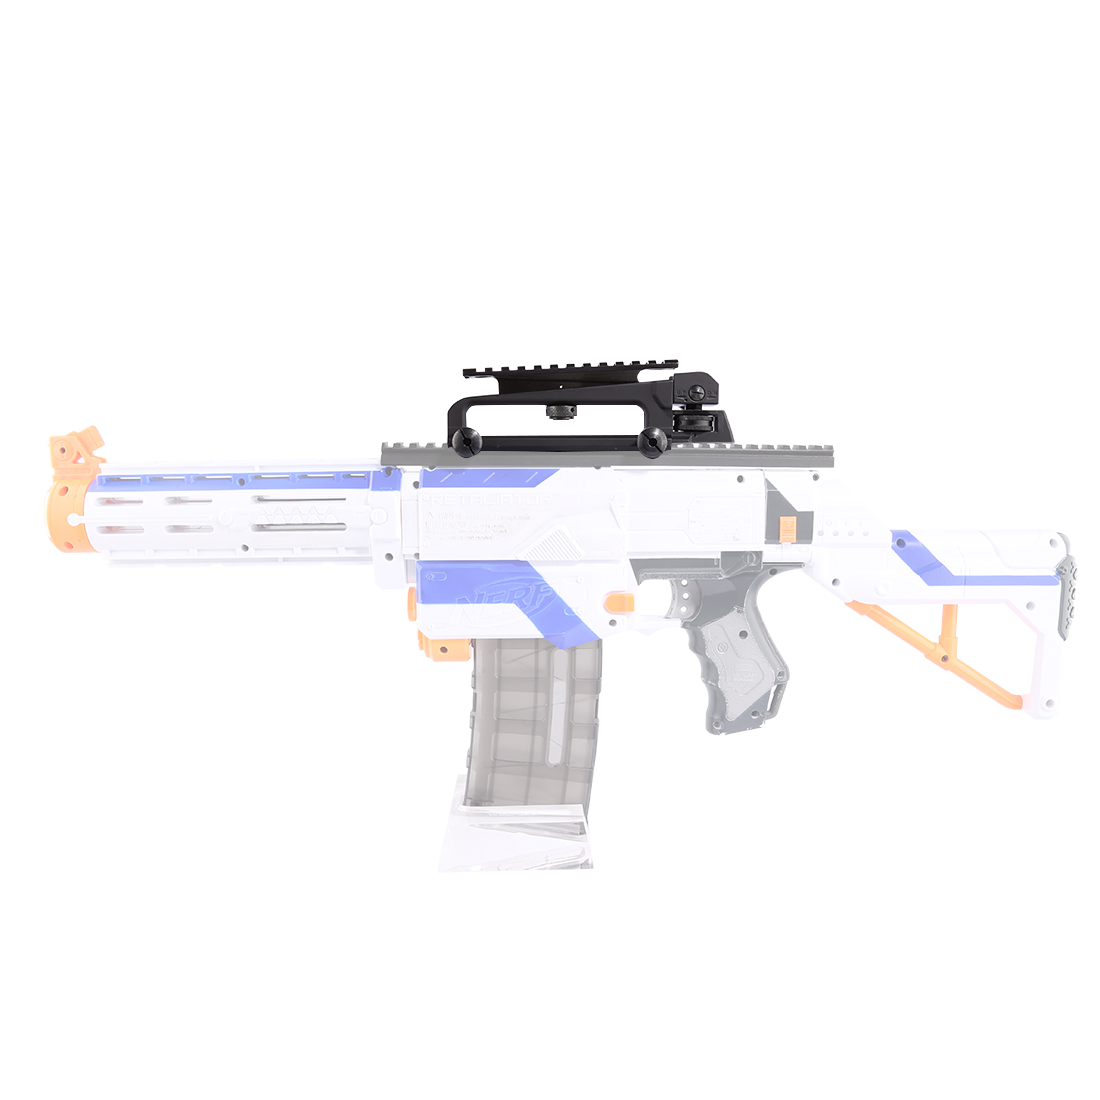 Jinming Metal Guide Rail for Modified Nerf Equipped + Adjustable Guide Rail Metal Carrying Device for Nerf Black